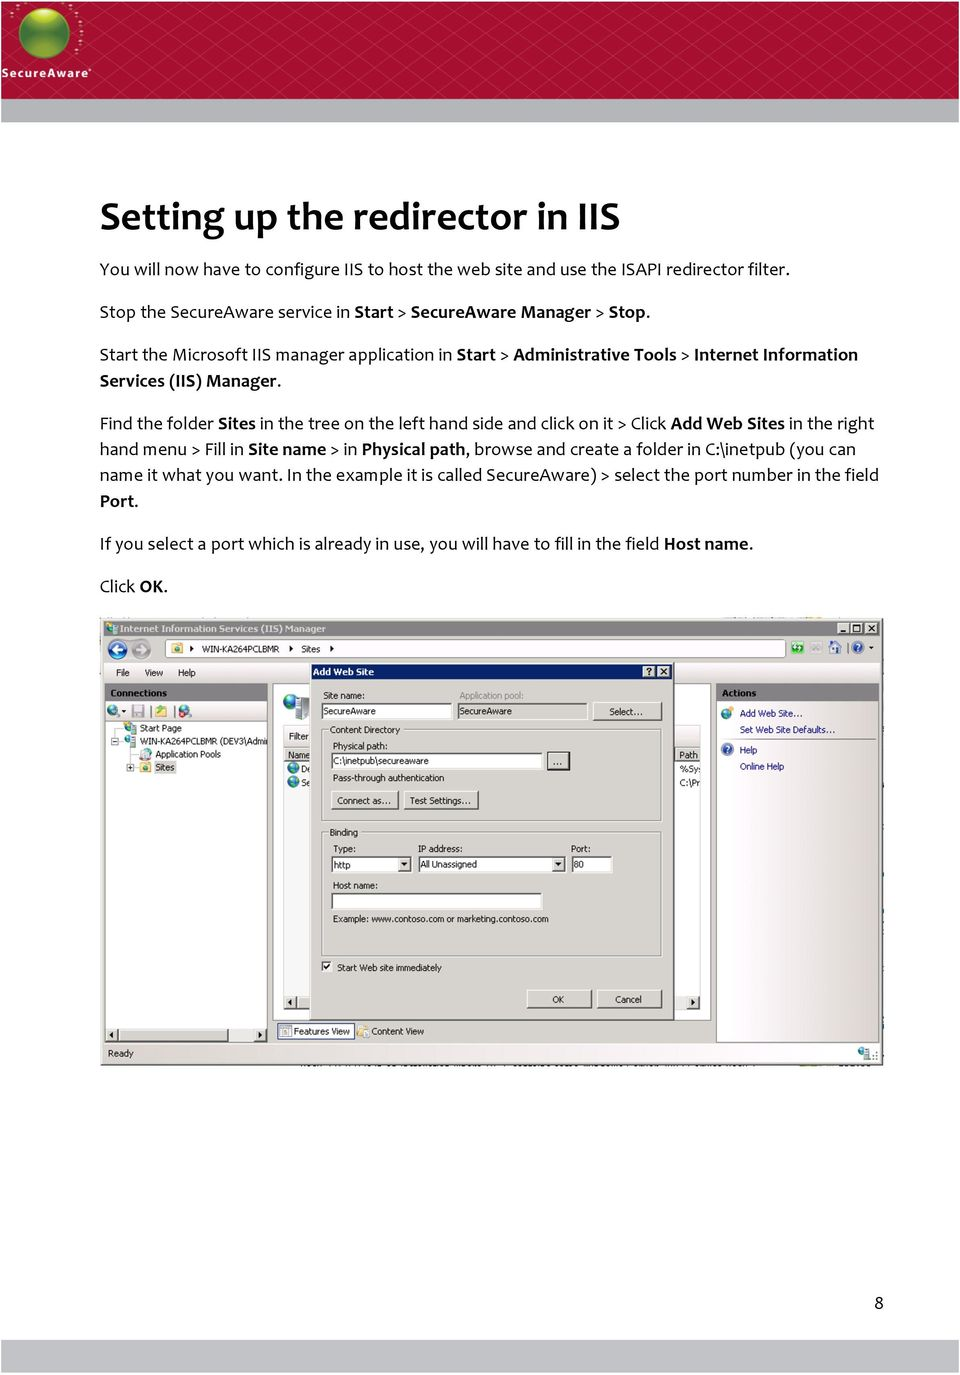 Start the Microsoft IIS manager application in Start > Administrative Tools > Internet Information Services (IIS) Manager.